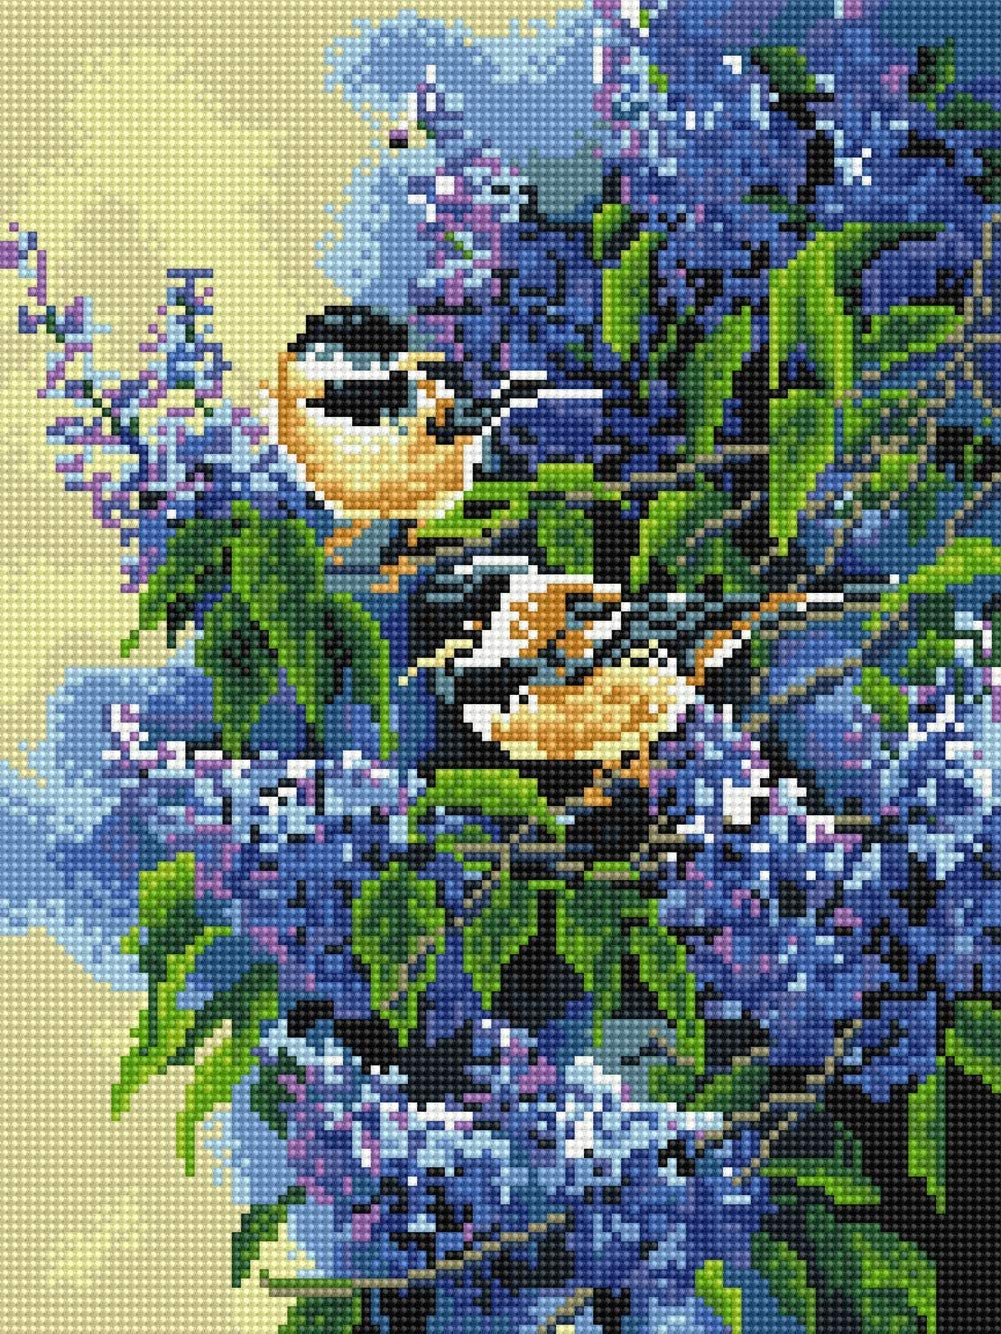 5D Diamond Painting Kit, DIY Diamond Painting Kits for Adults, Full Drill Paints Happiness Birds for Home Wall Decor